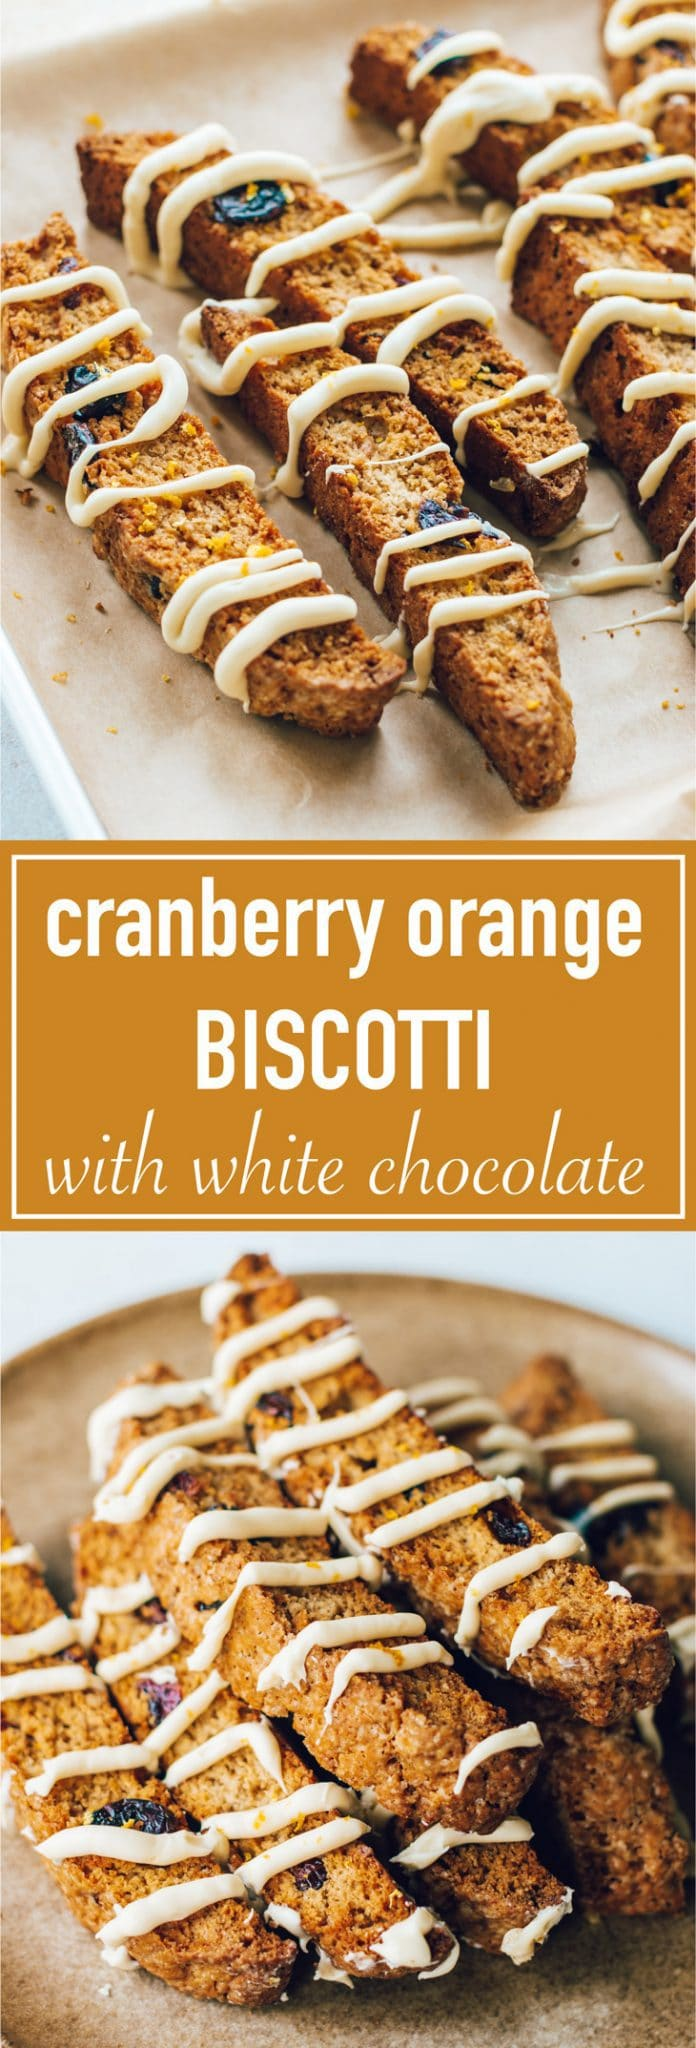 Cranberry orange biscotti cookies with white chocolate are a delicious treat especially during the holidays!